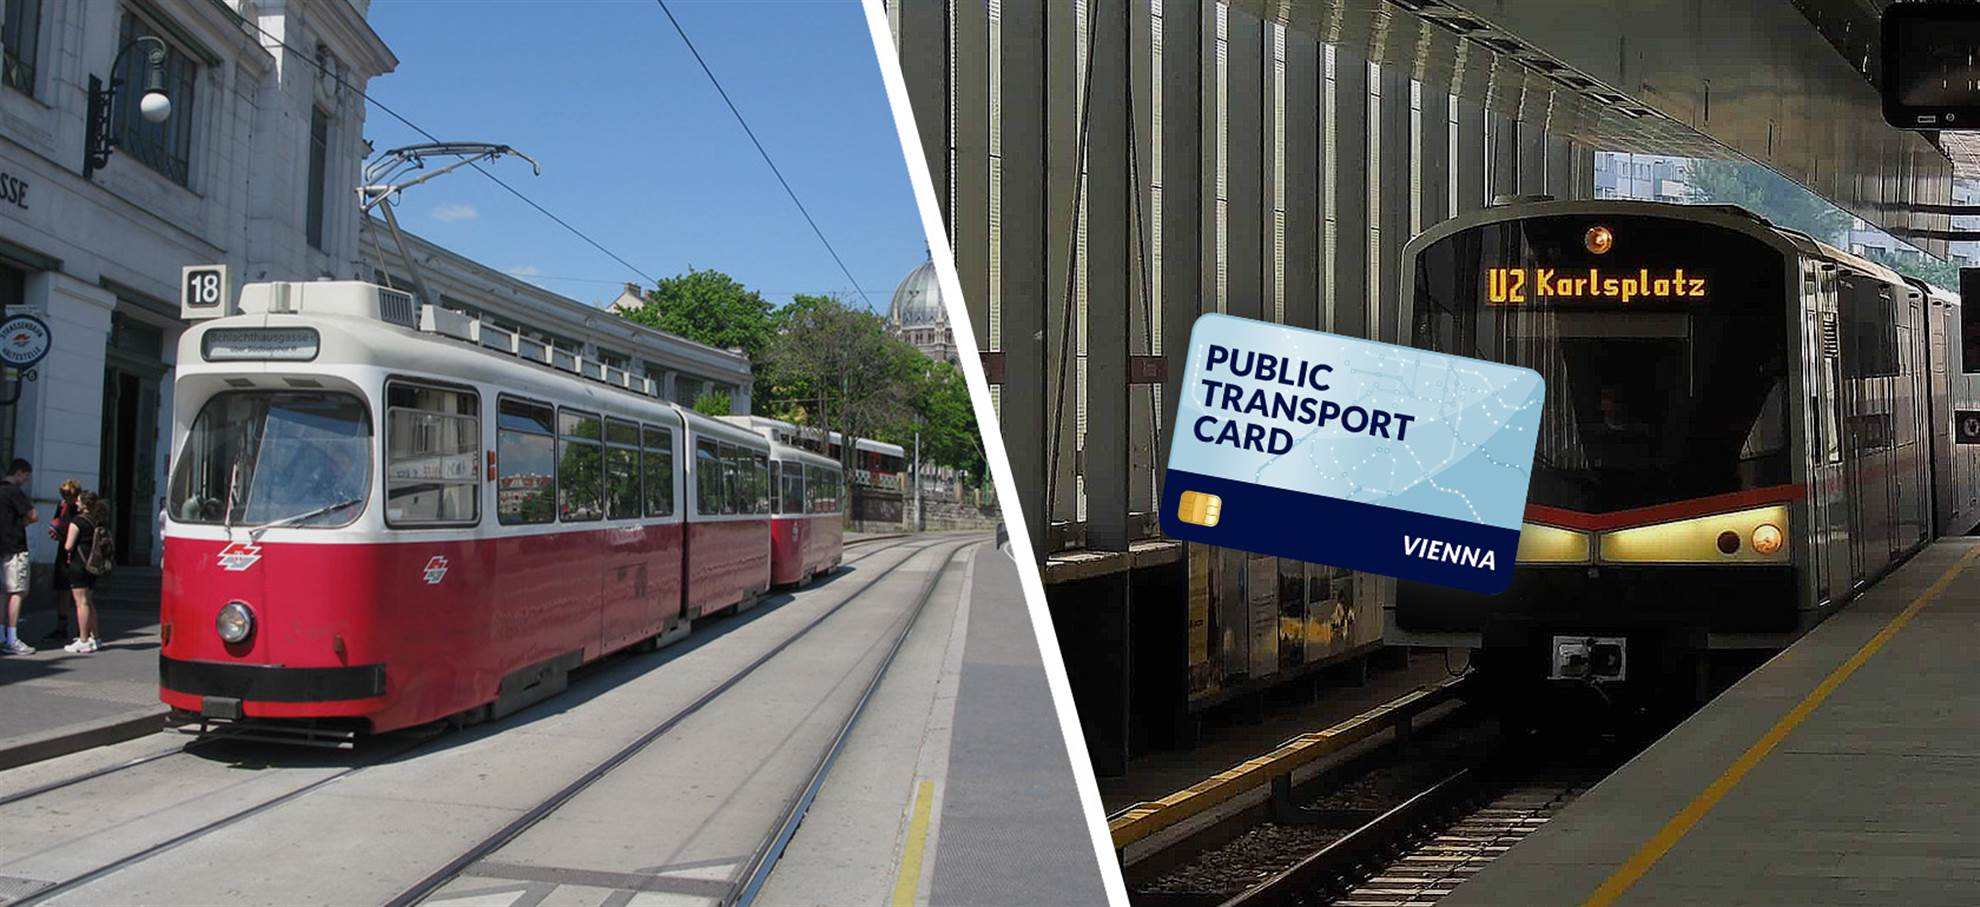 Viena Travel Card